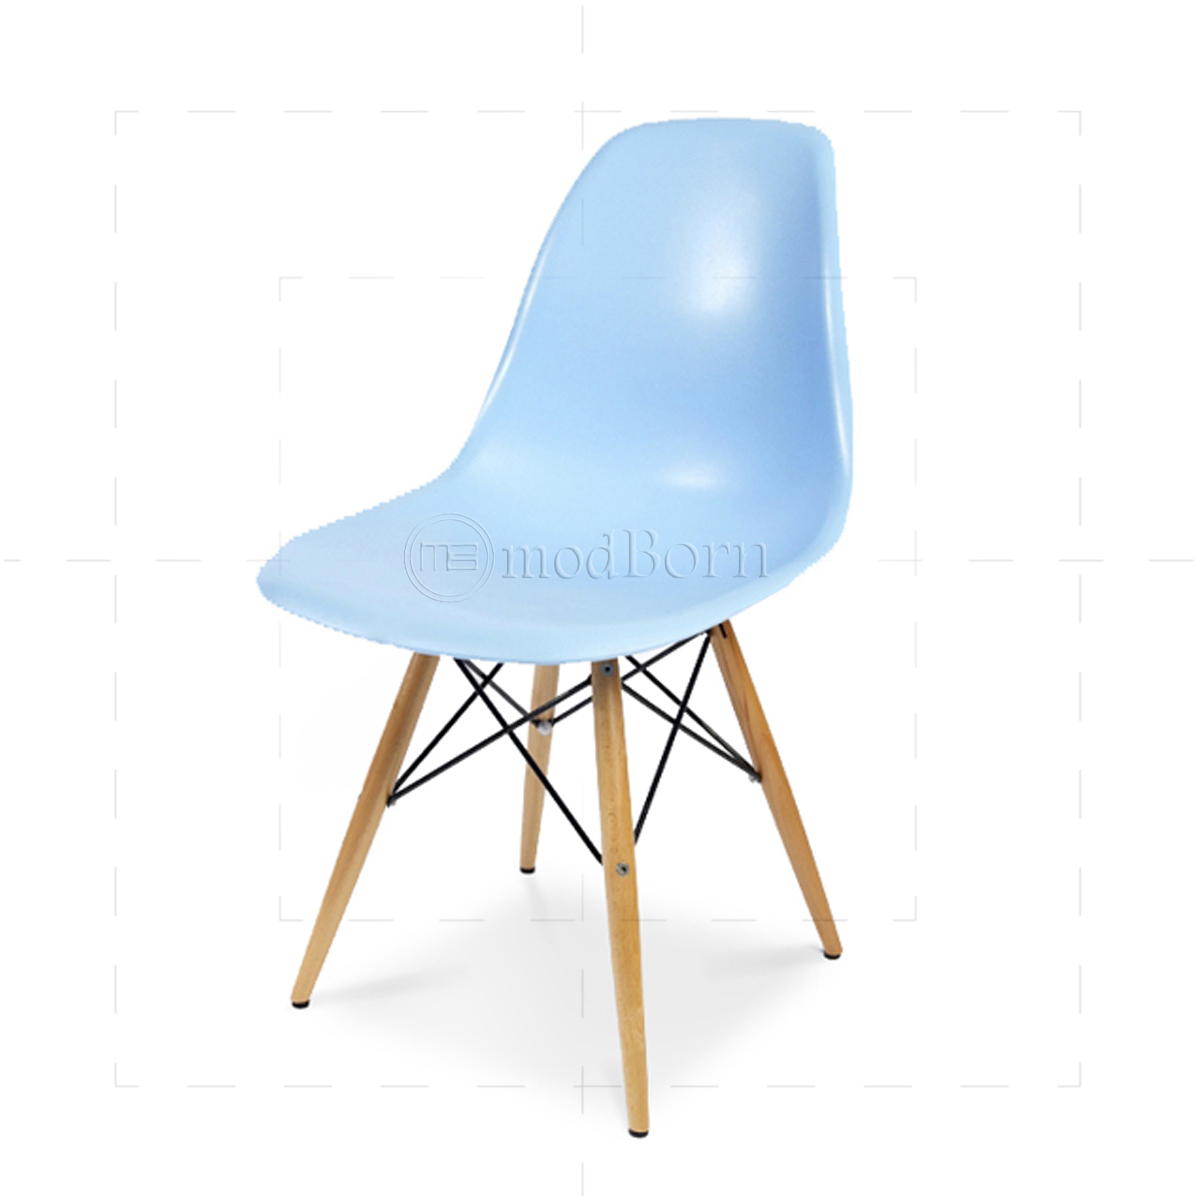 Eames style dining dsw chair blue replica for Eames chair replica deutschland